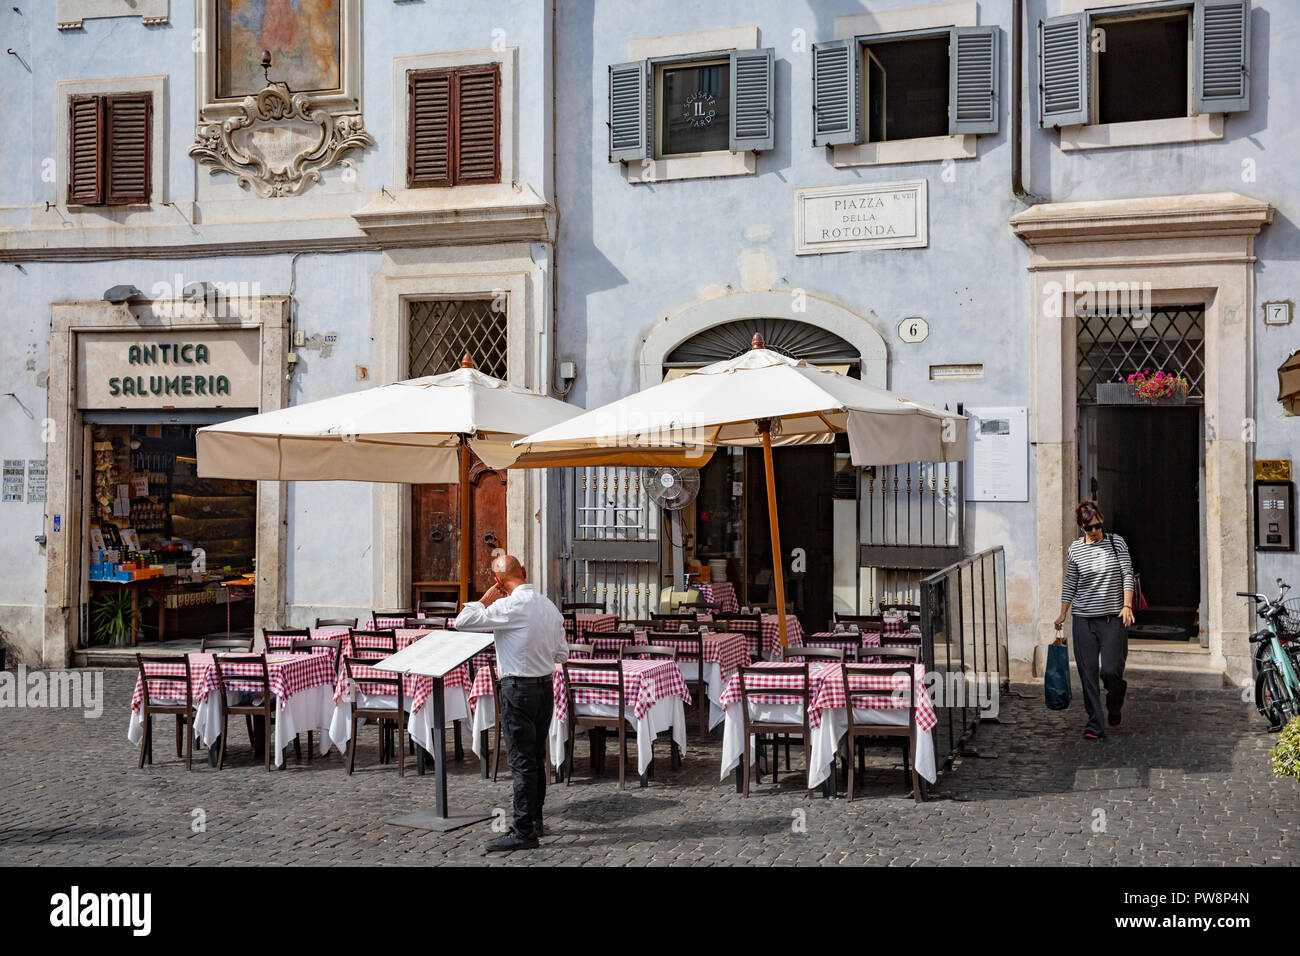 Waiters and italian restaurant with traditional red tablecloths in piazza della rotunda,Rome,Italy - Stock Image